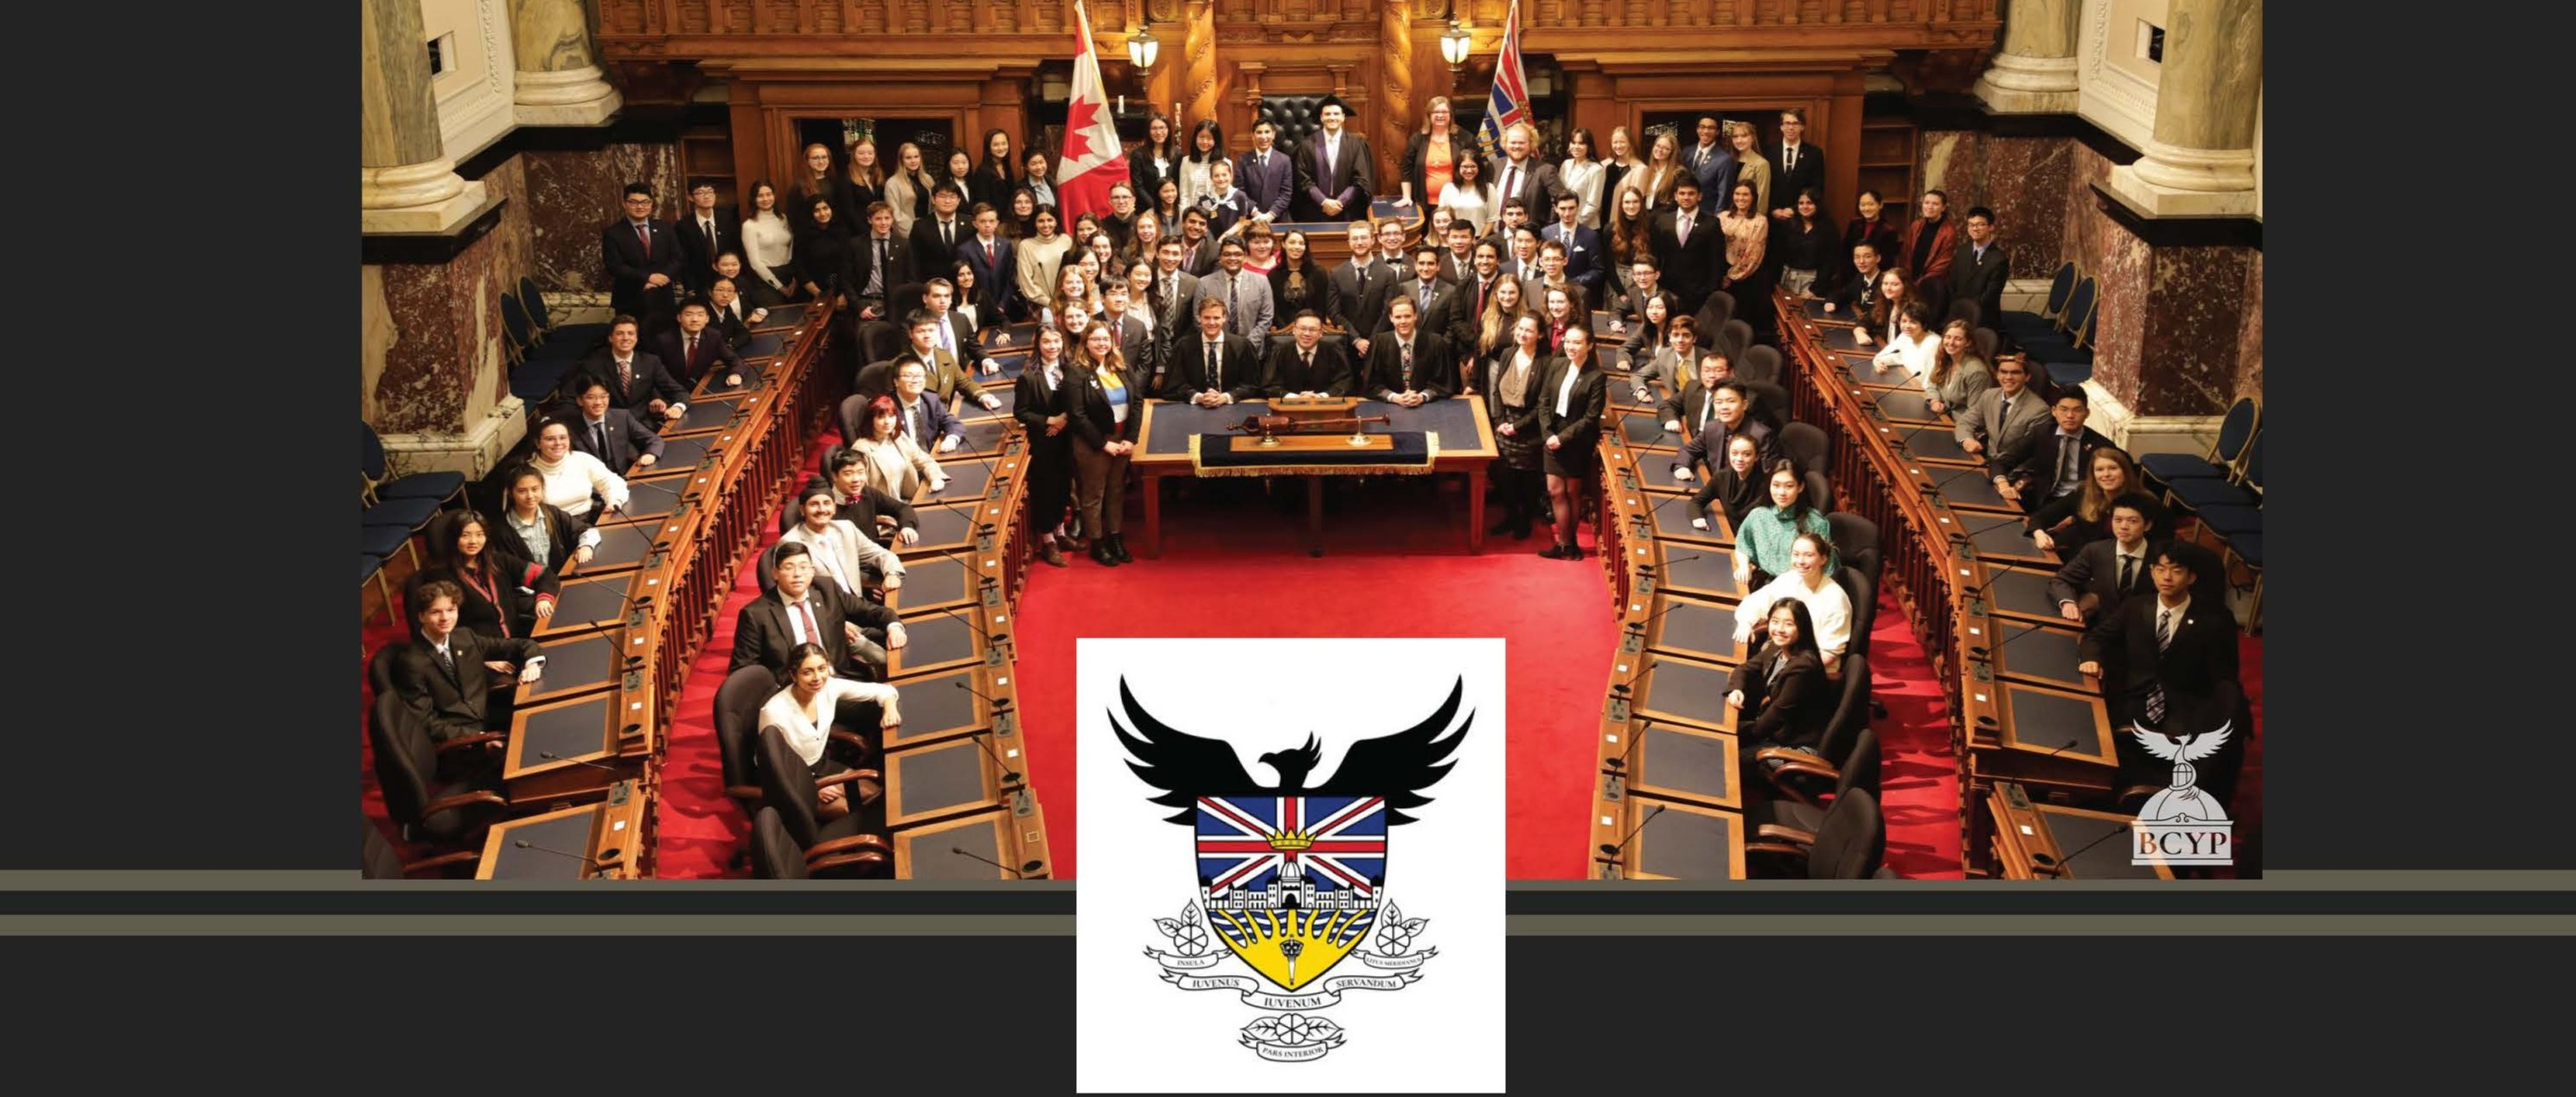 BC Youth Parliament 2021 poster